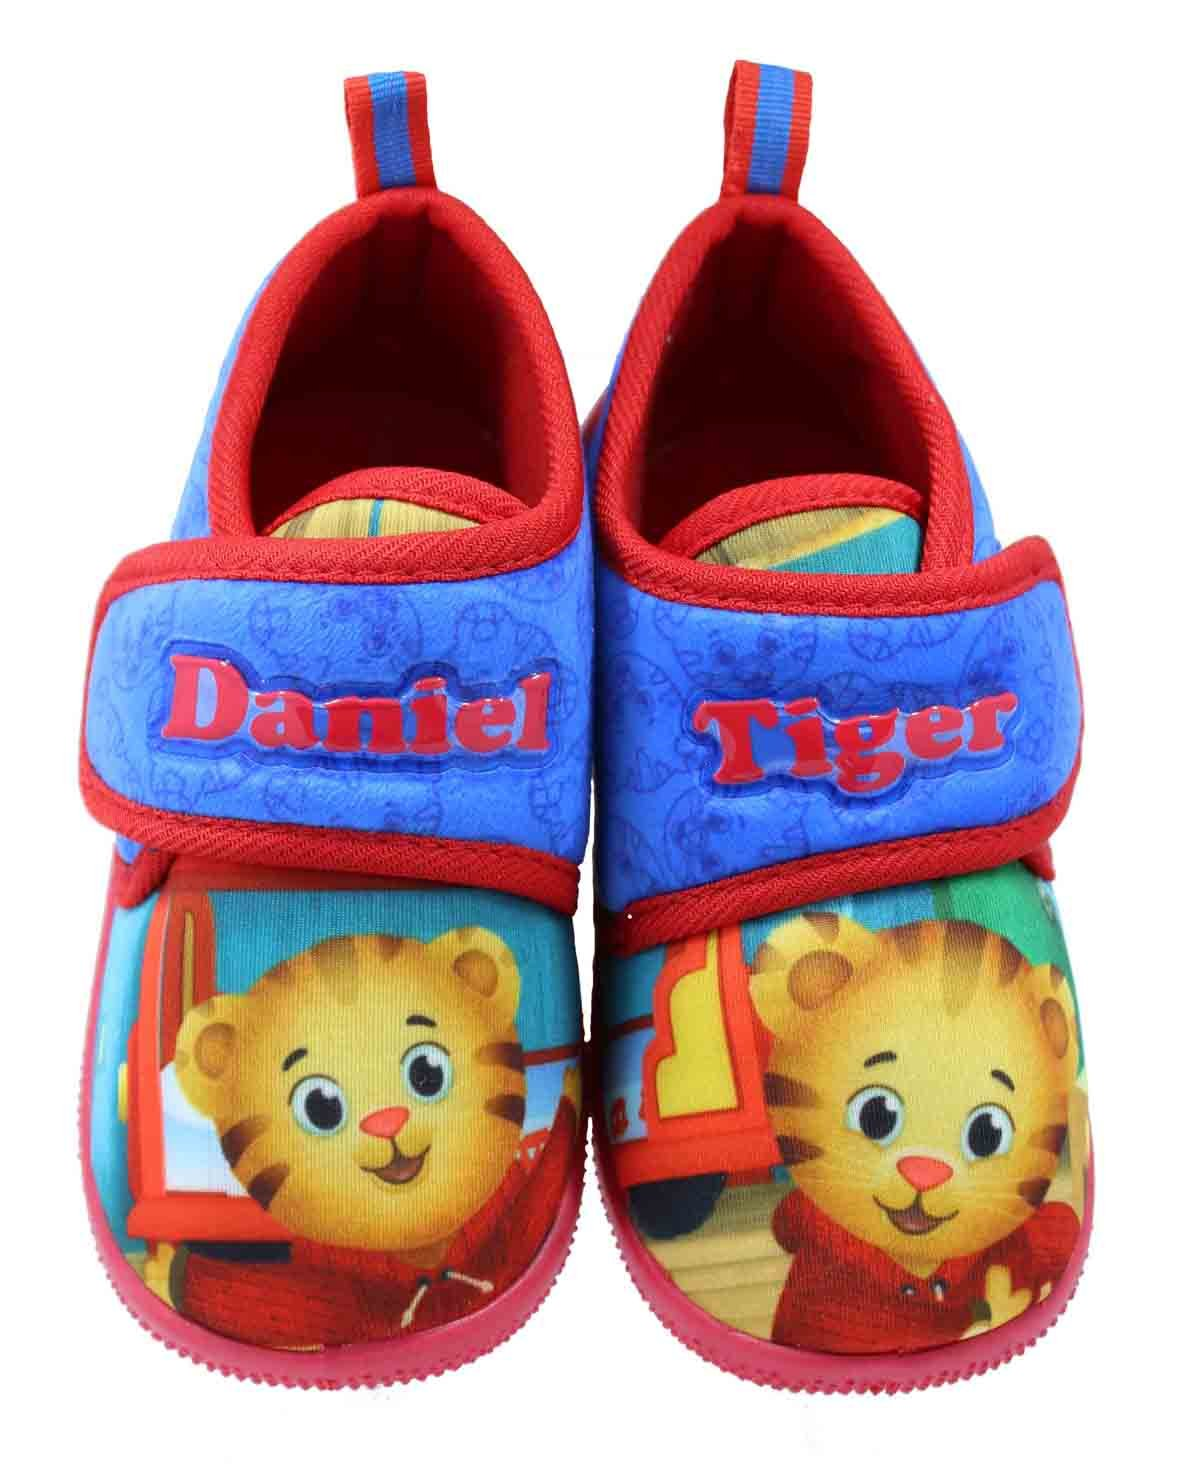 Daniel Tiger Toddler Daycare Slippers (7-8 M US Toddler)